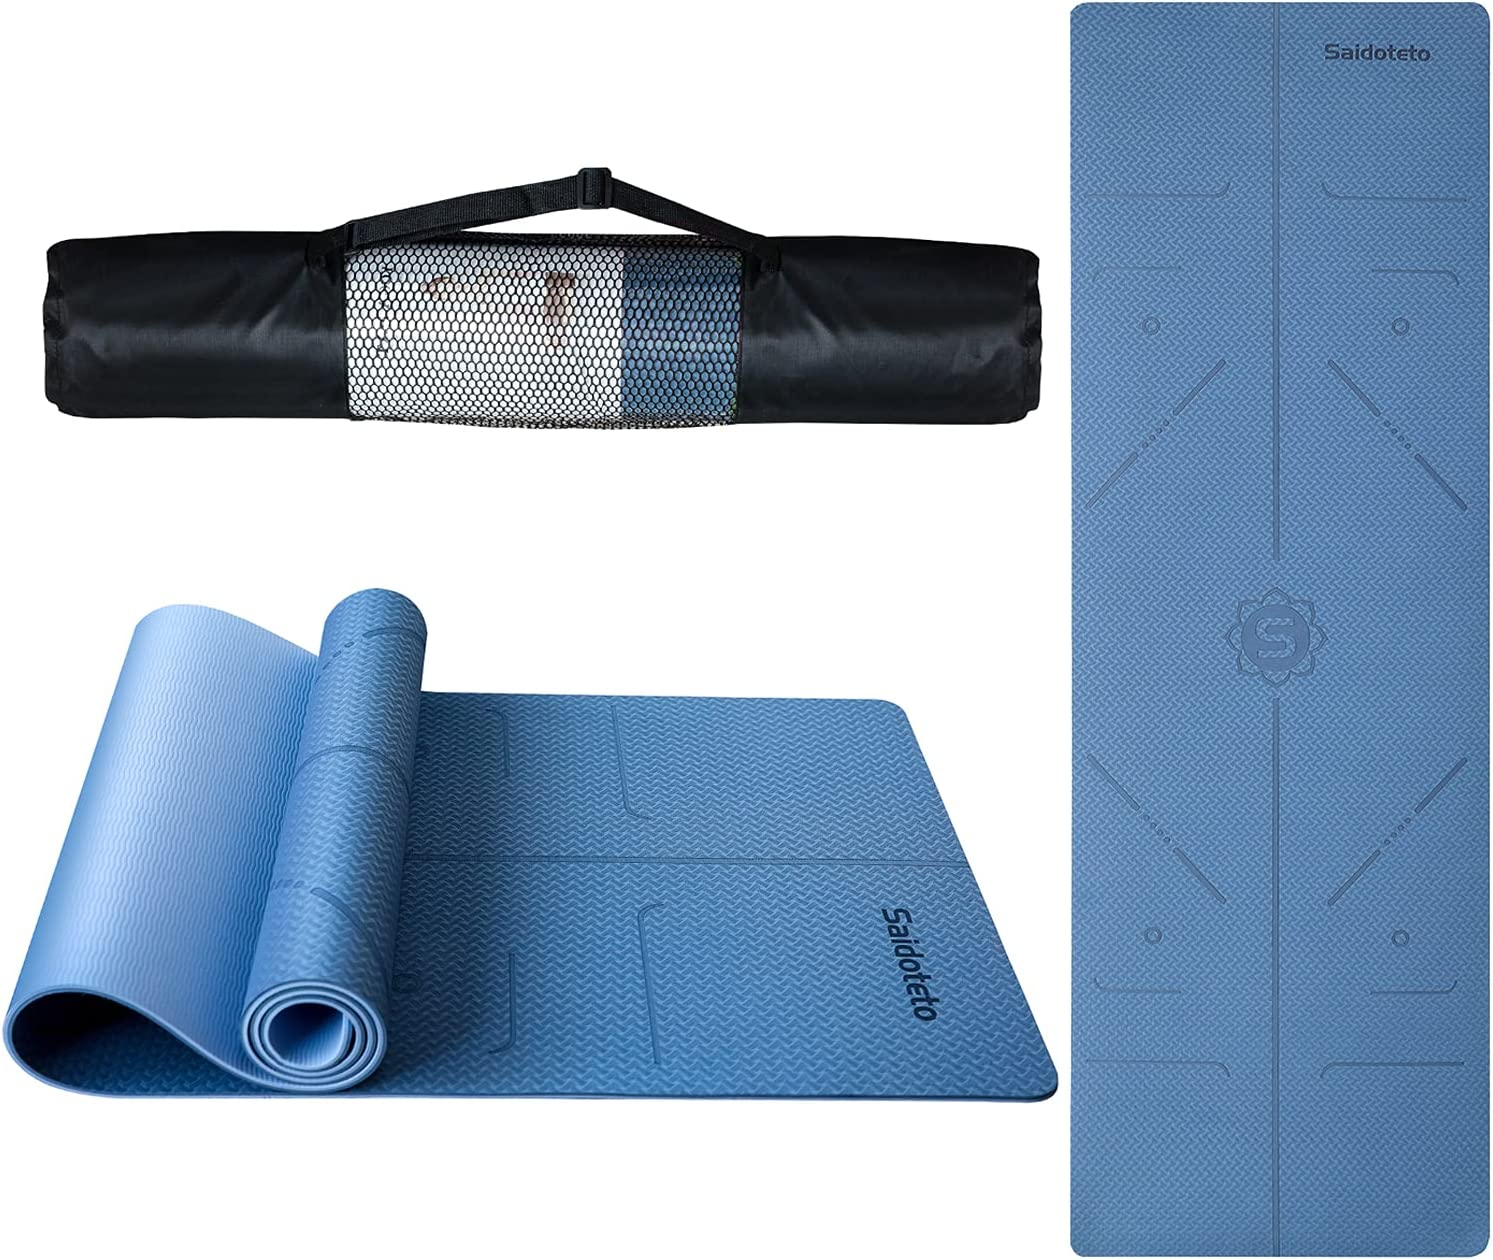 sold out Saditeto Yoga Mat with Body Alignment Fittness Exer - TPE Max 40% OFF System